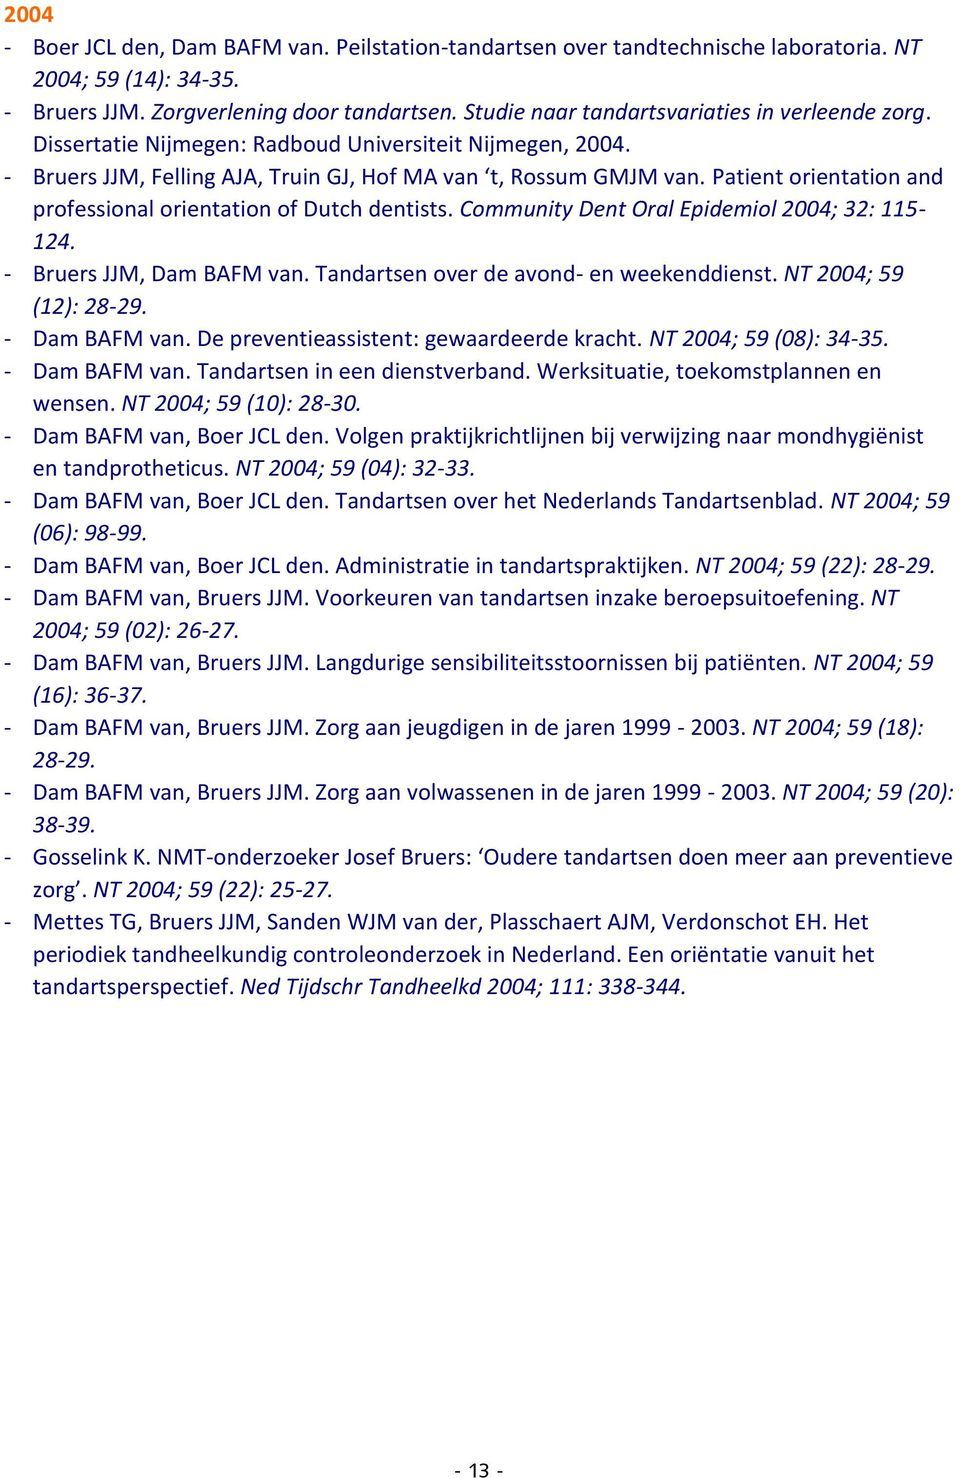 Patient orientation and professional orientation of Dutch dentists. Community Dent Oral Epidemiol 2004; 32: 115-124. - Bruers JJM, Dam BAFM van. Tandartsen over de avond- en weekenddienst.